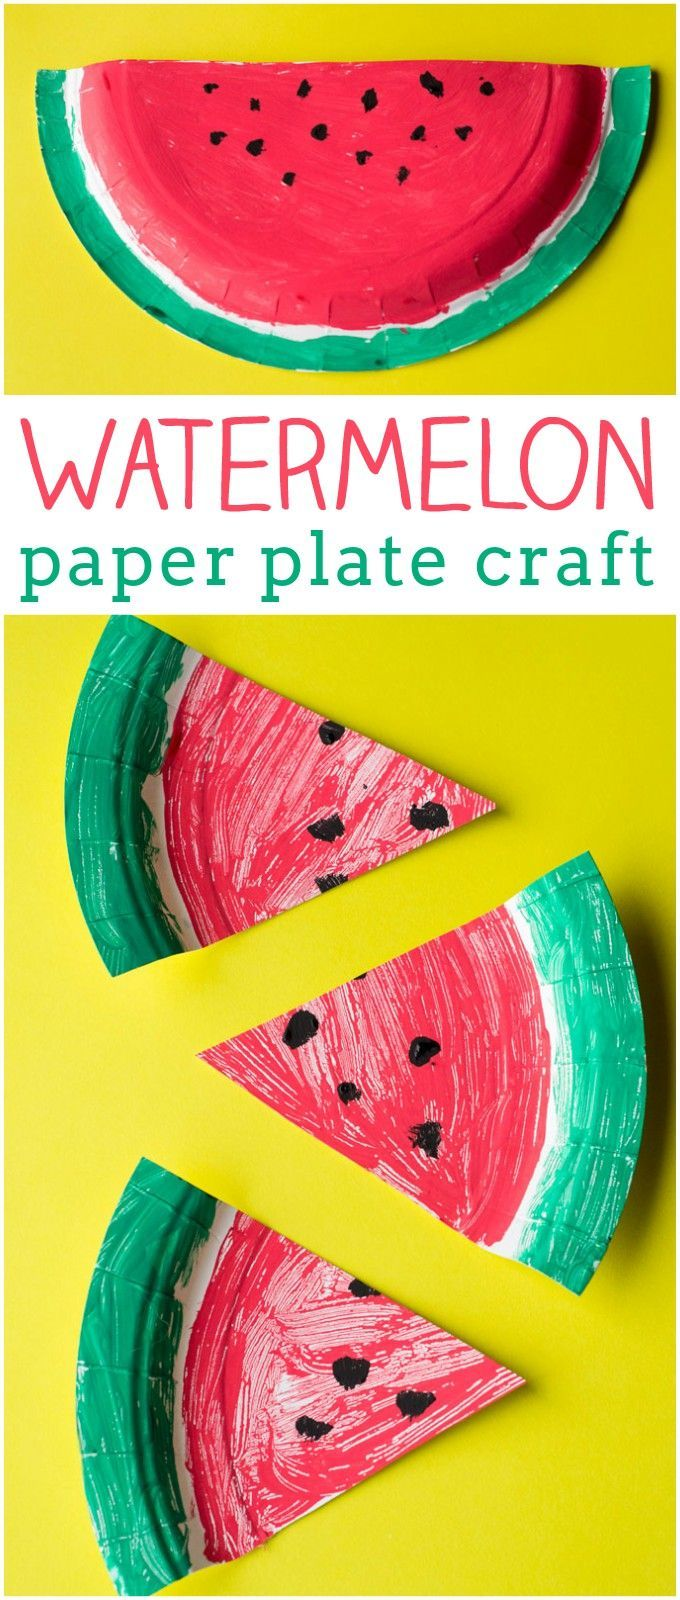 This watermelon paper plate craft is perfect for preschoolers! It makes a great summertime project, or you can pair it with a book like The Surprise Garden or The Very Hungry Caterpillar.